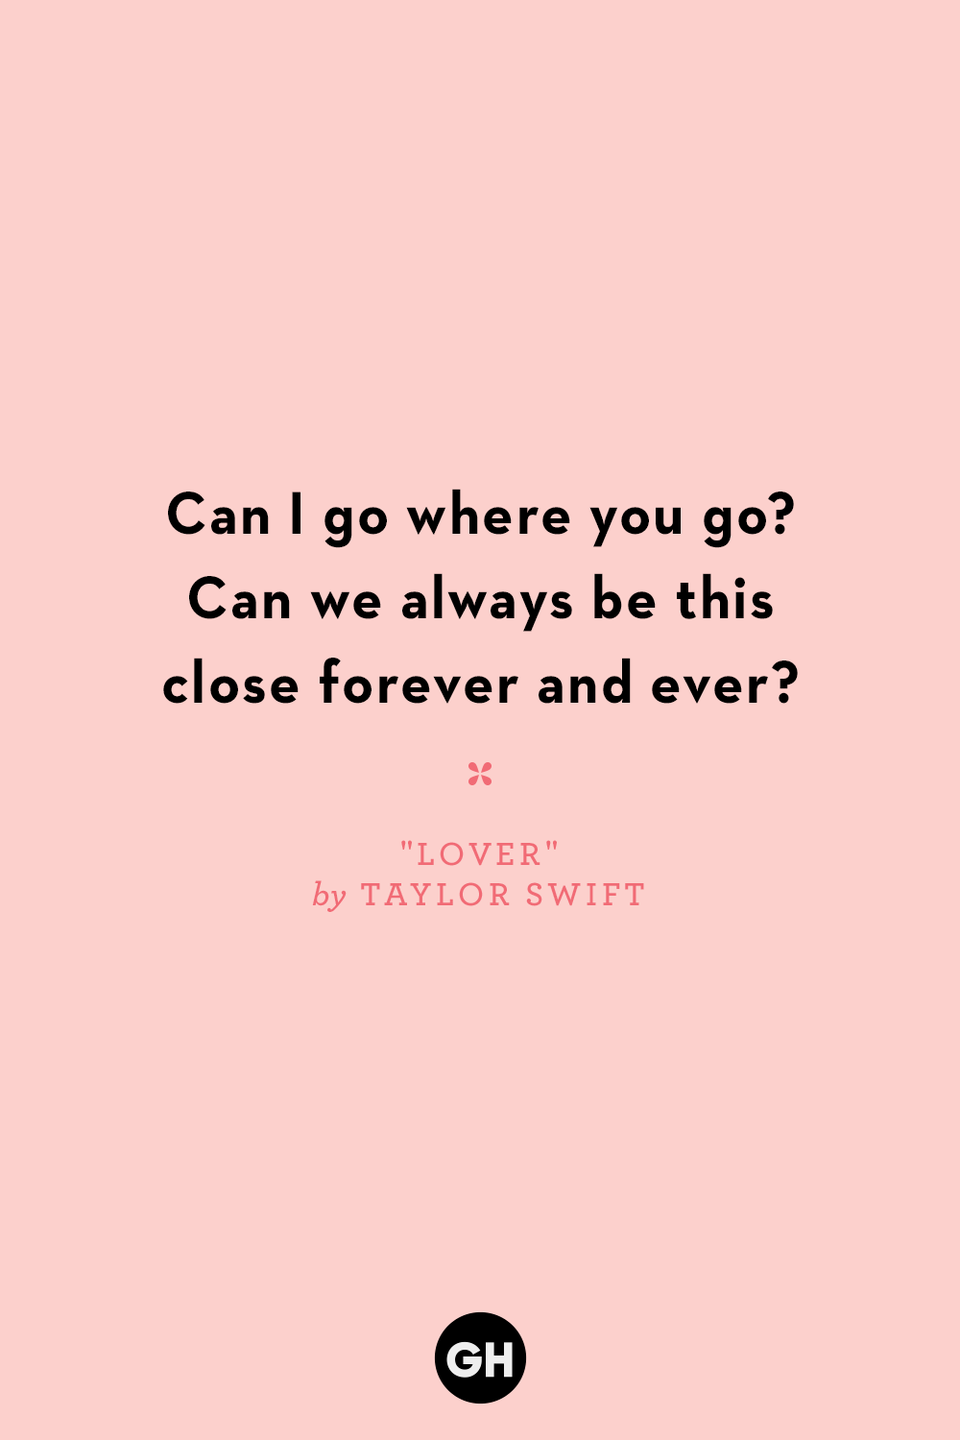 <p>Can I go where you go?</p><p>Can we always be this close forever and ever?</p>